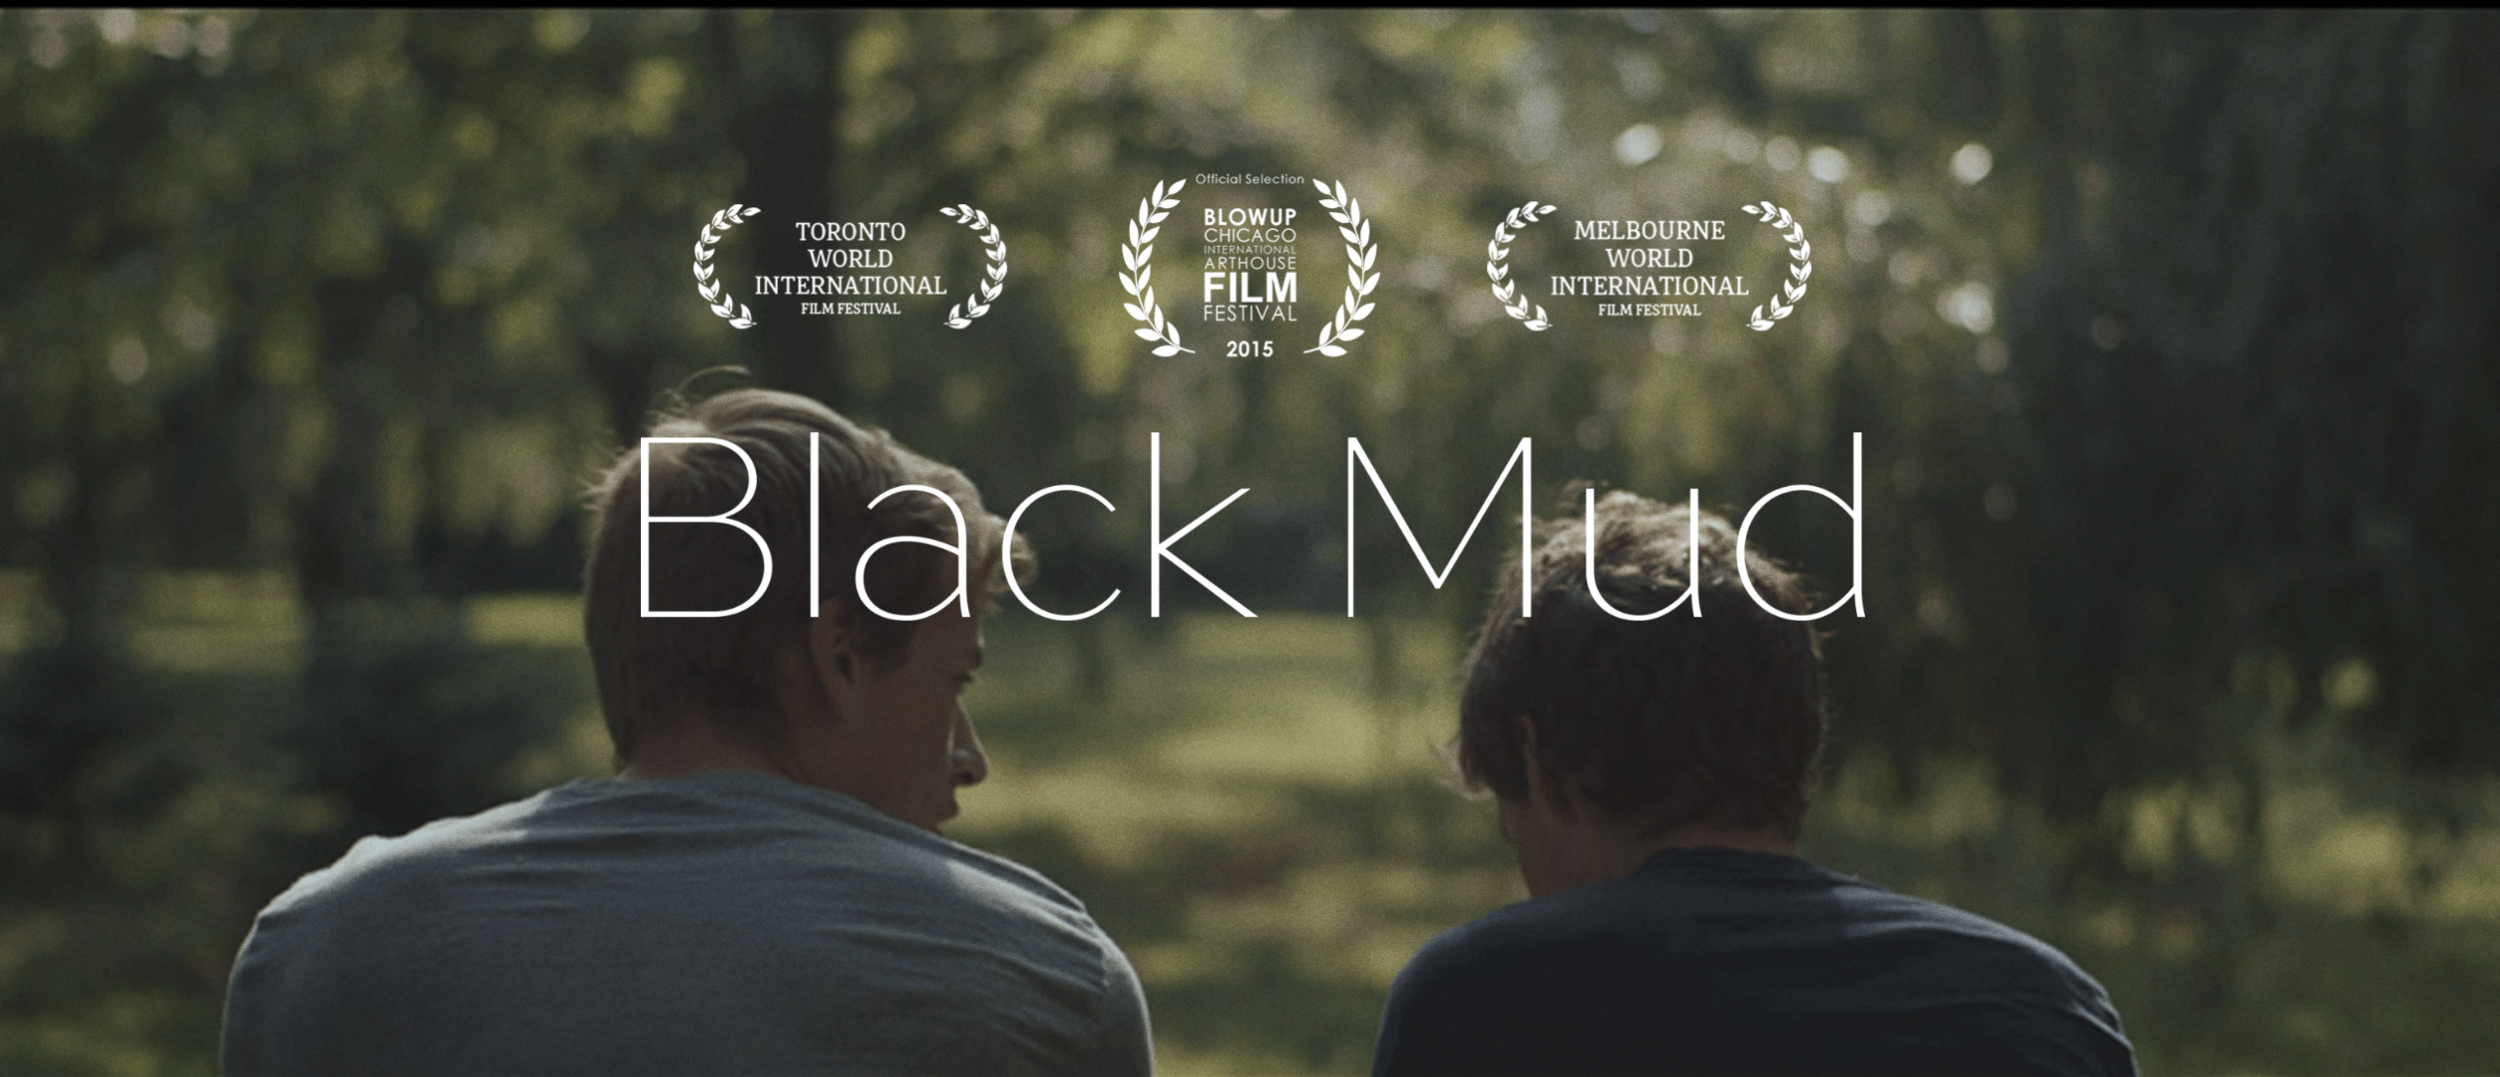 Copy of Black Mud